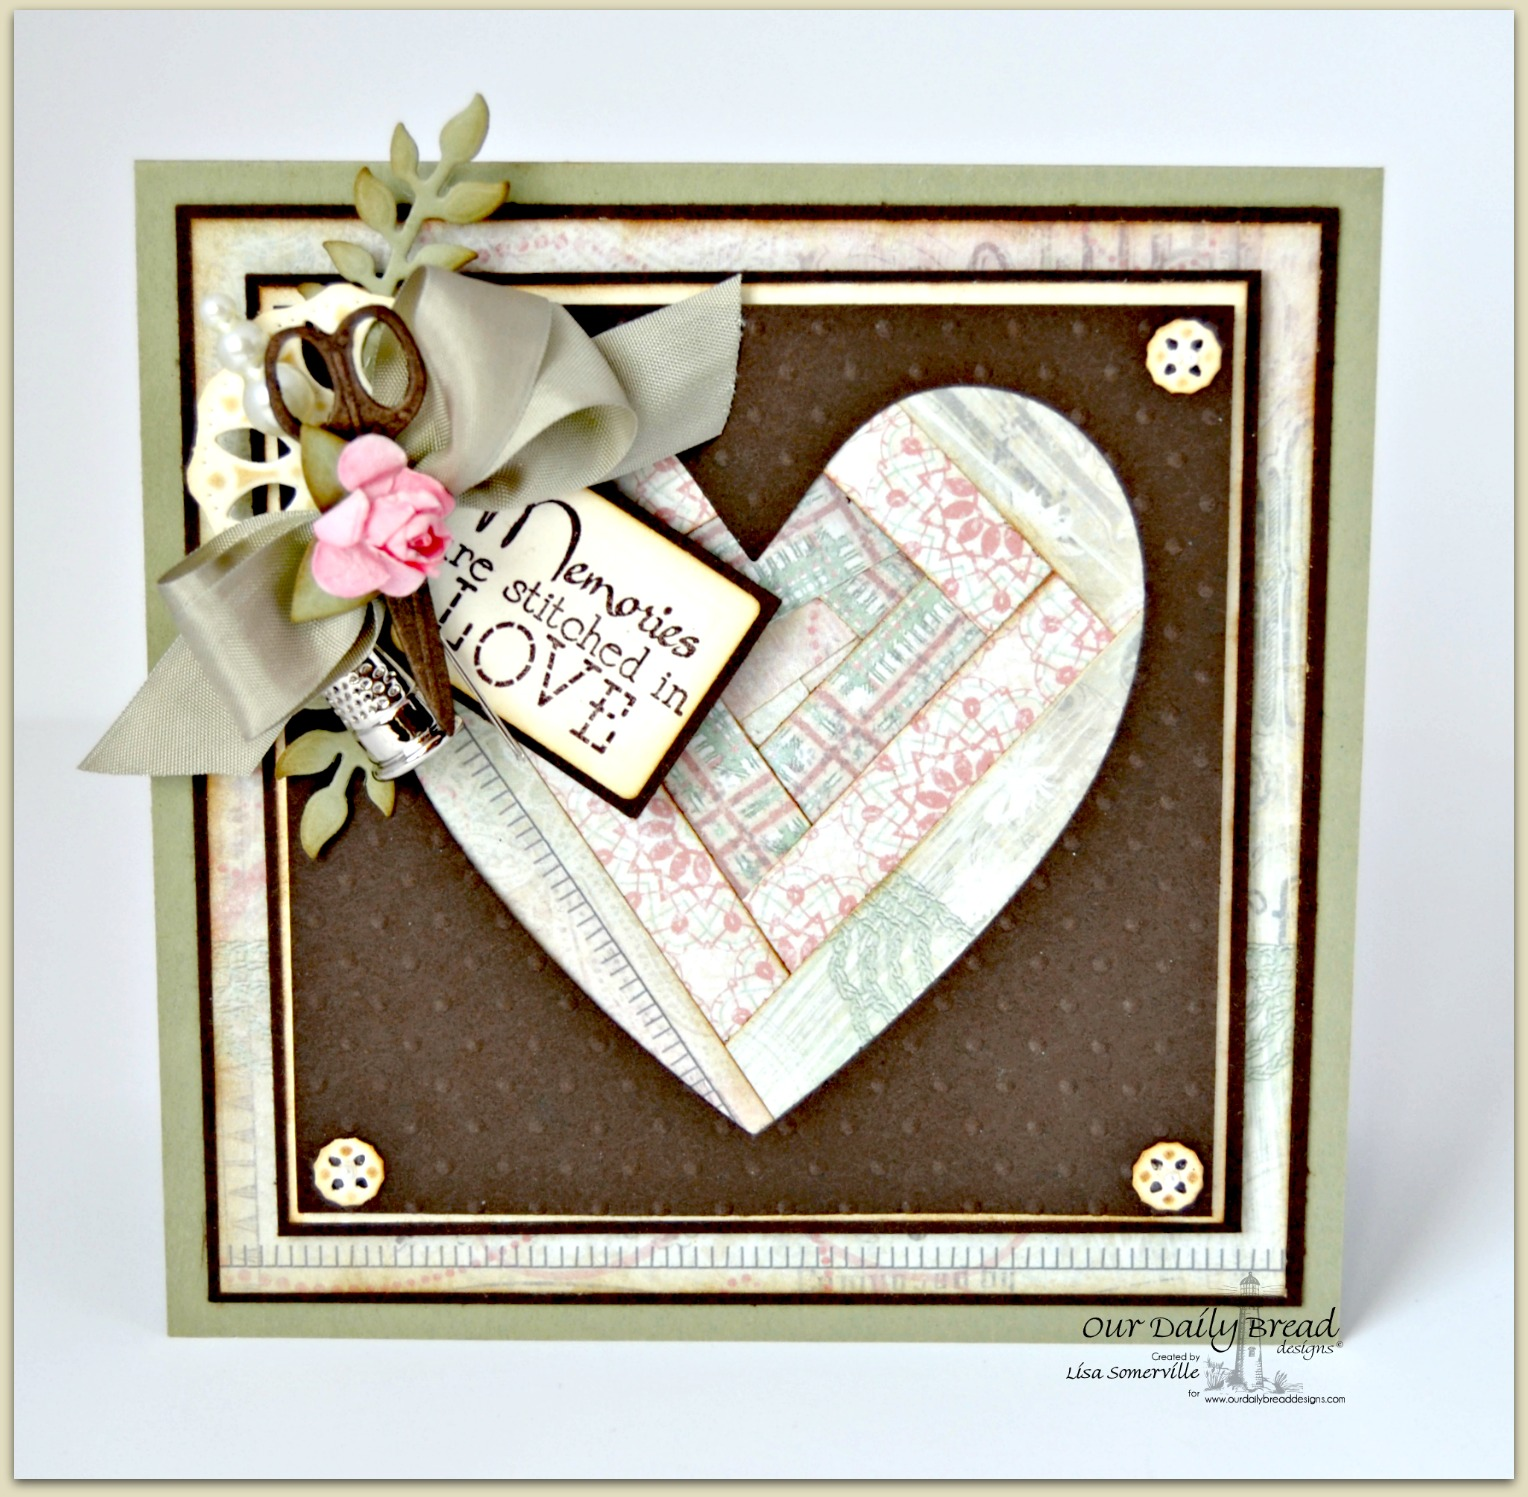 Stitches,ODBD Custom Ornate Hearts Die, ODBD Custom Apron and Tools Die, ODBD Custom Doily Die, ODBD Custom Recipe Card and Tags Dies, ODBD Custom Fancy Foliage Die, Soulful Stitches Paper Collection